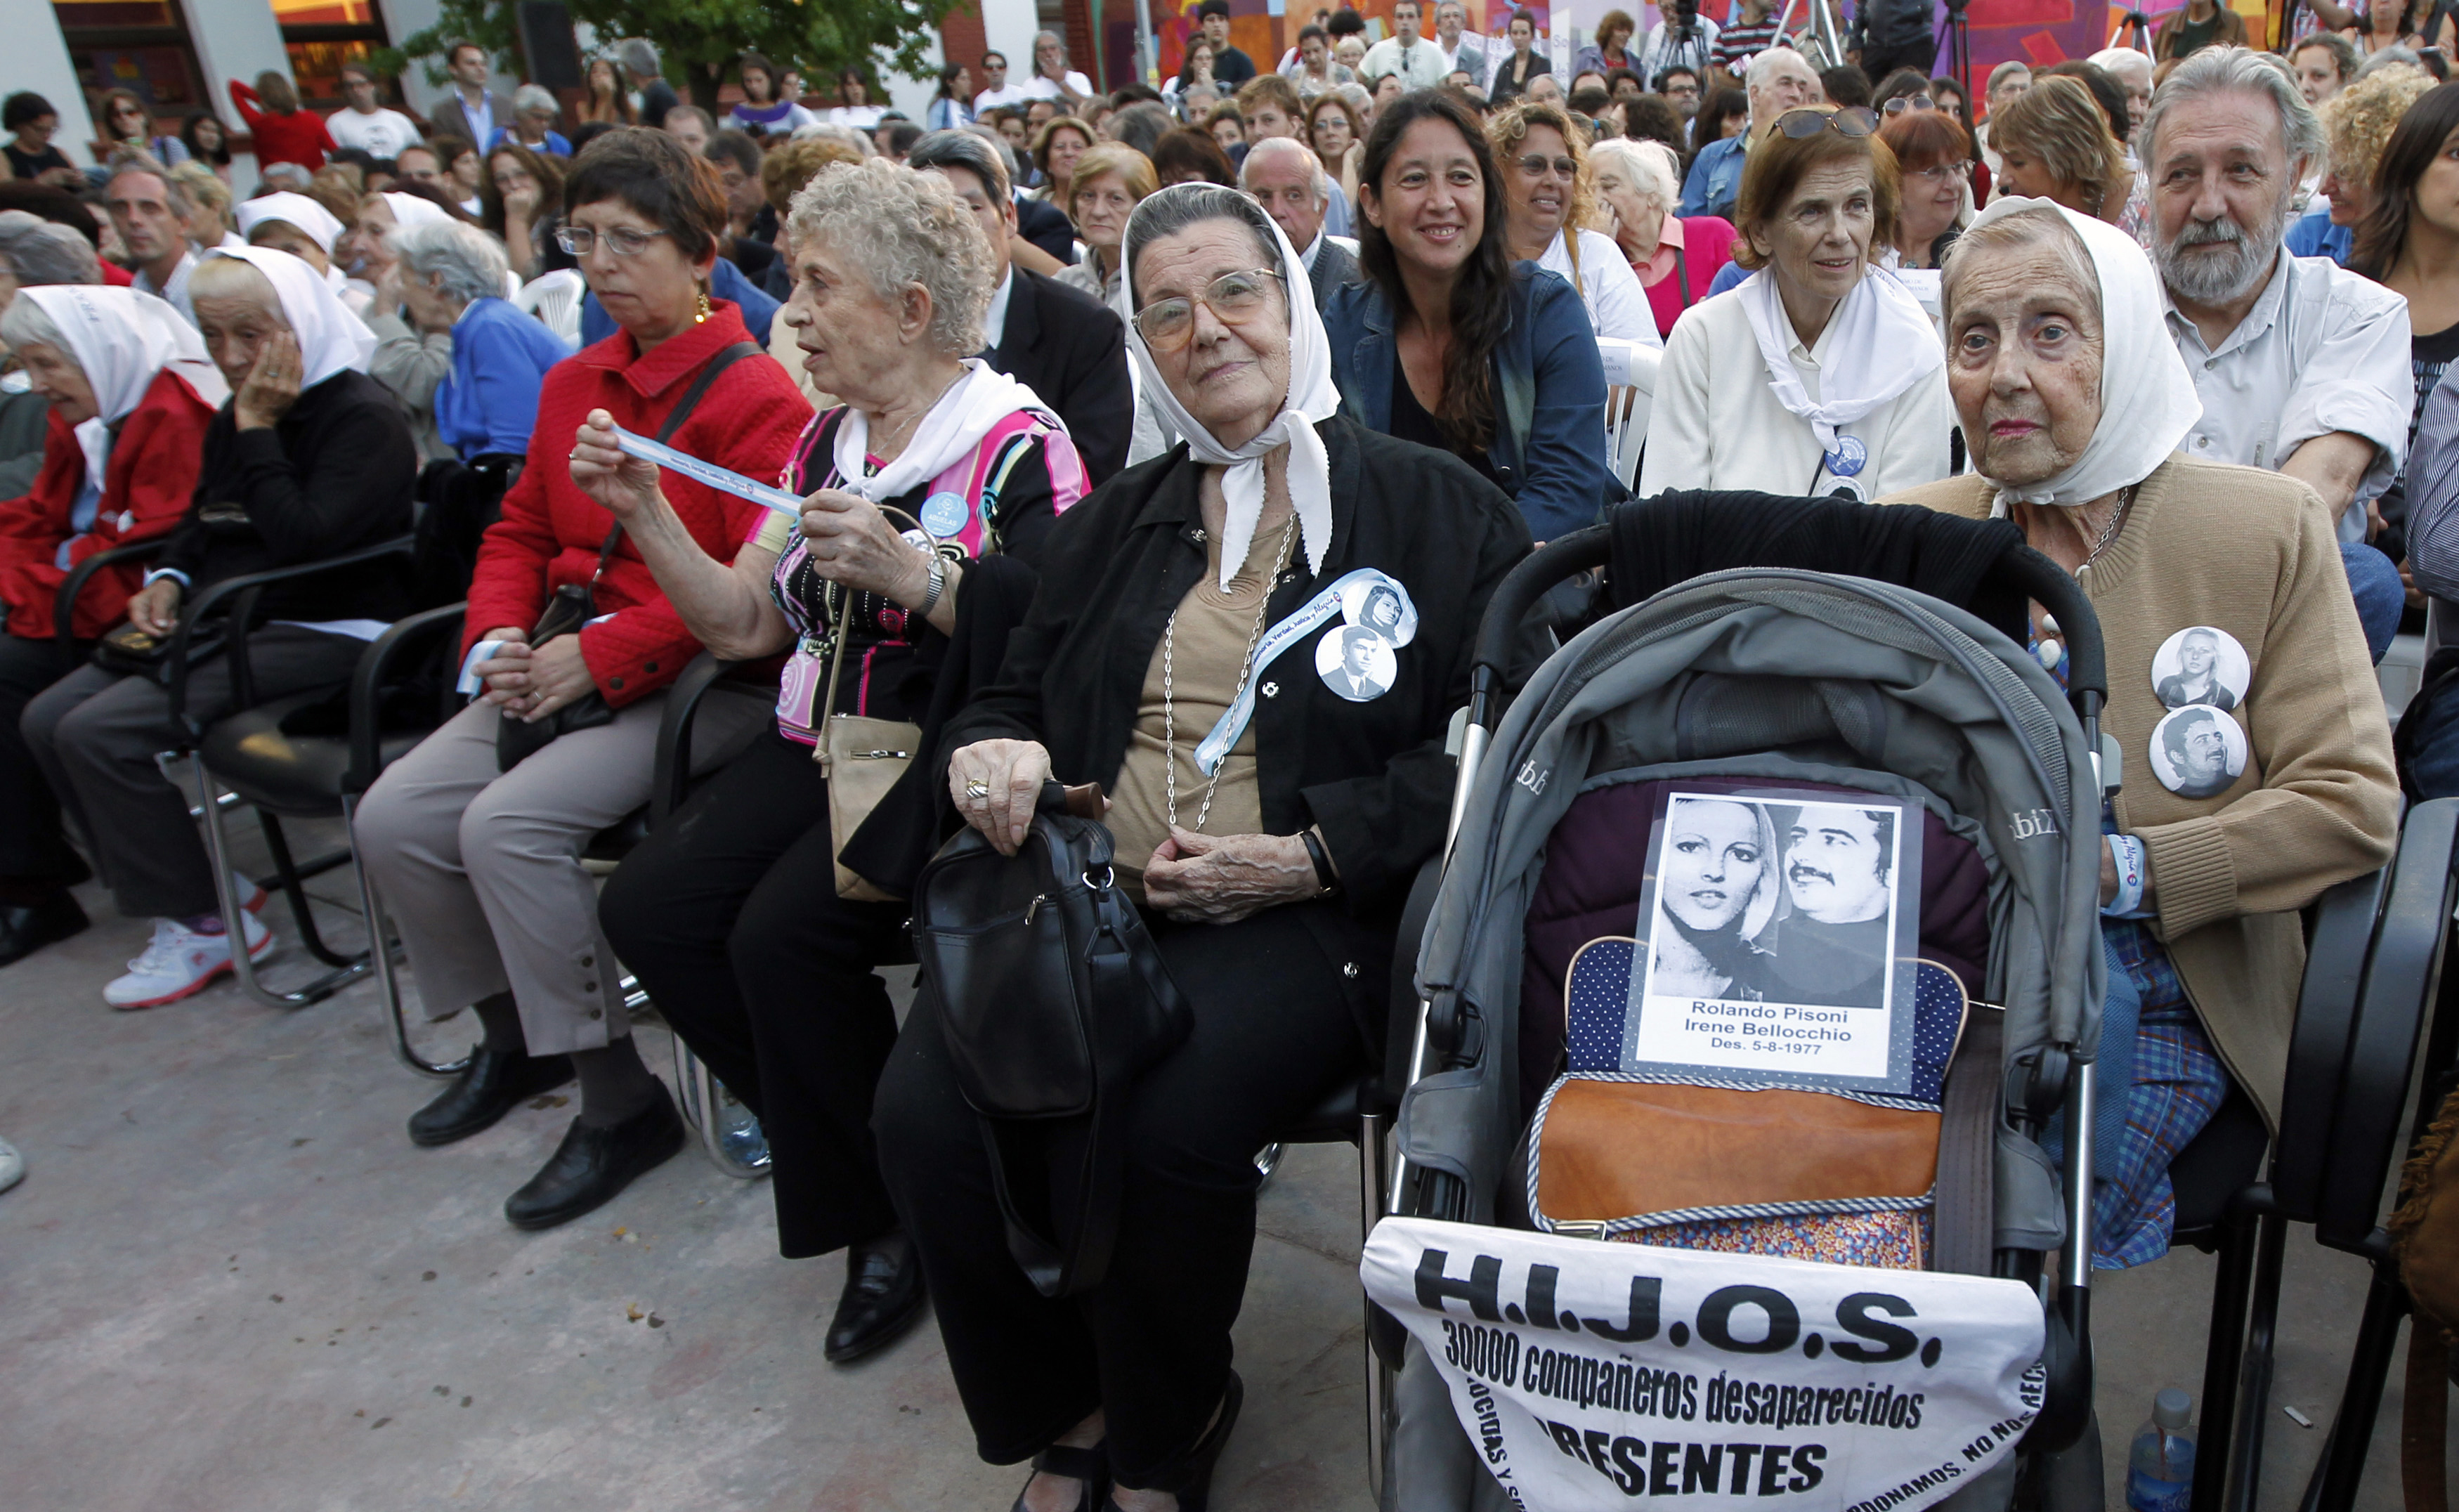 Aurora Zucco de Bellocchio, a member of human rights organization Madres de Plaza de Mayo (Mothers of Plaza de Mayo), sits behind a pram with a picture of her daughter Irene Bellocchio and her partner Rolando Pisoni, who both disappeared in 1977, during t